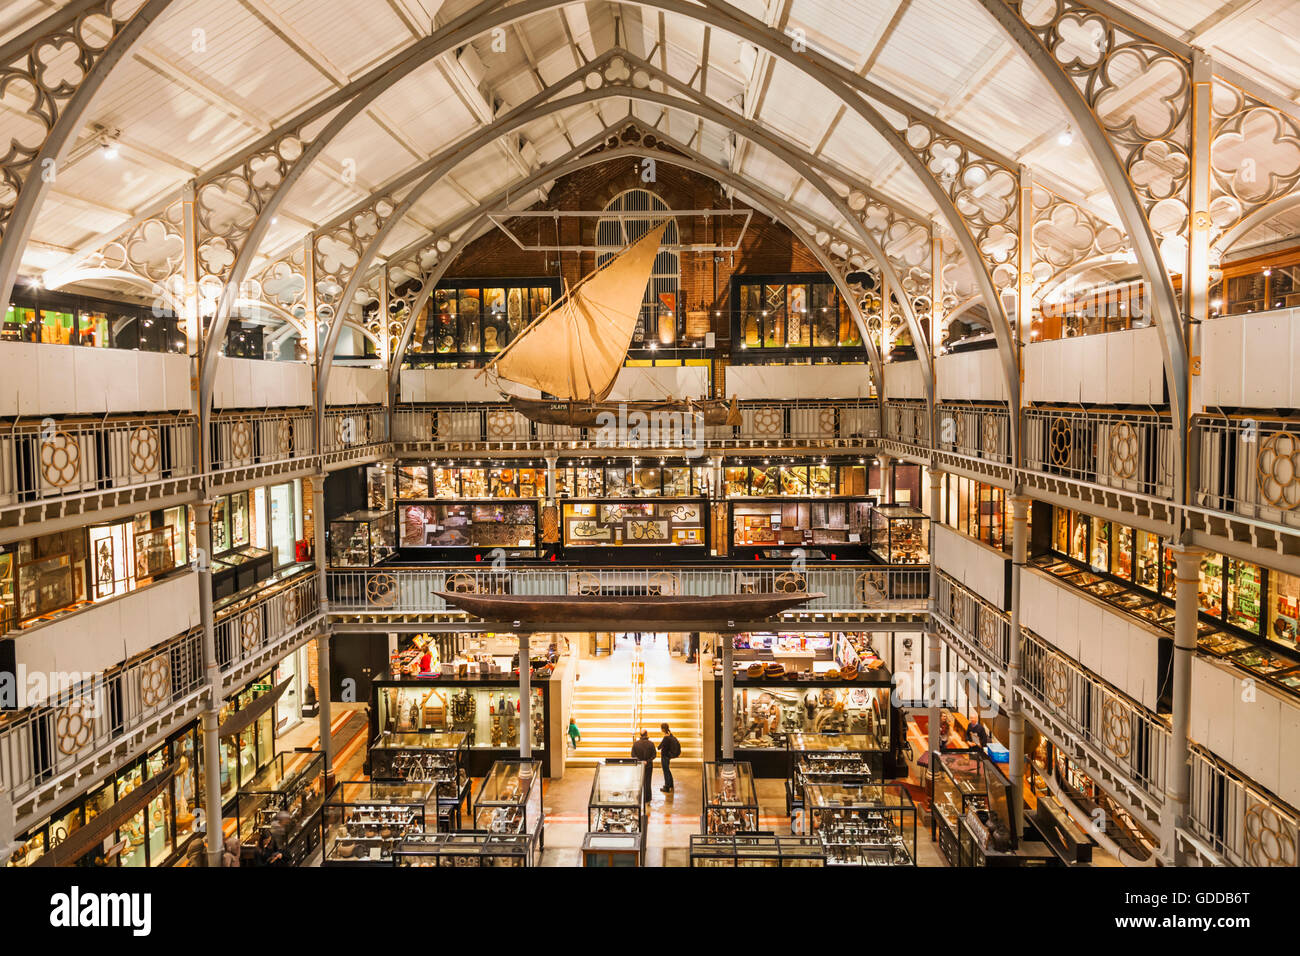 England,Oxfordshire,Oxford,Pitt Rivers Museum,Interior View - Stock Image